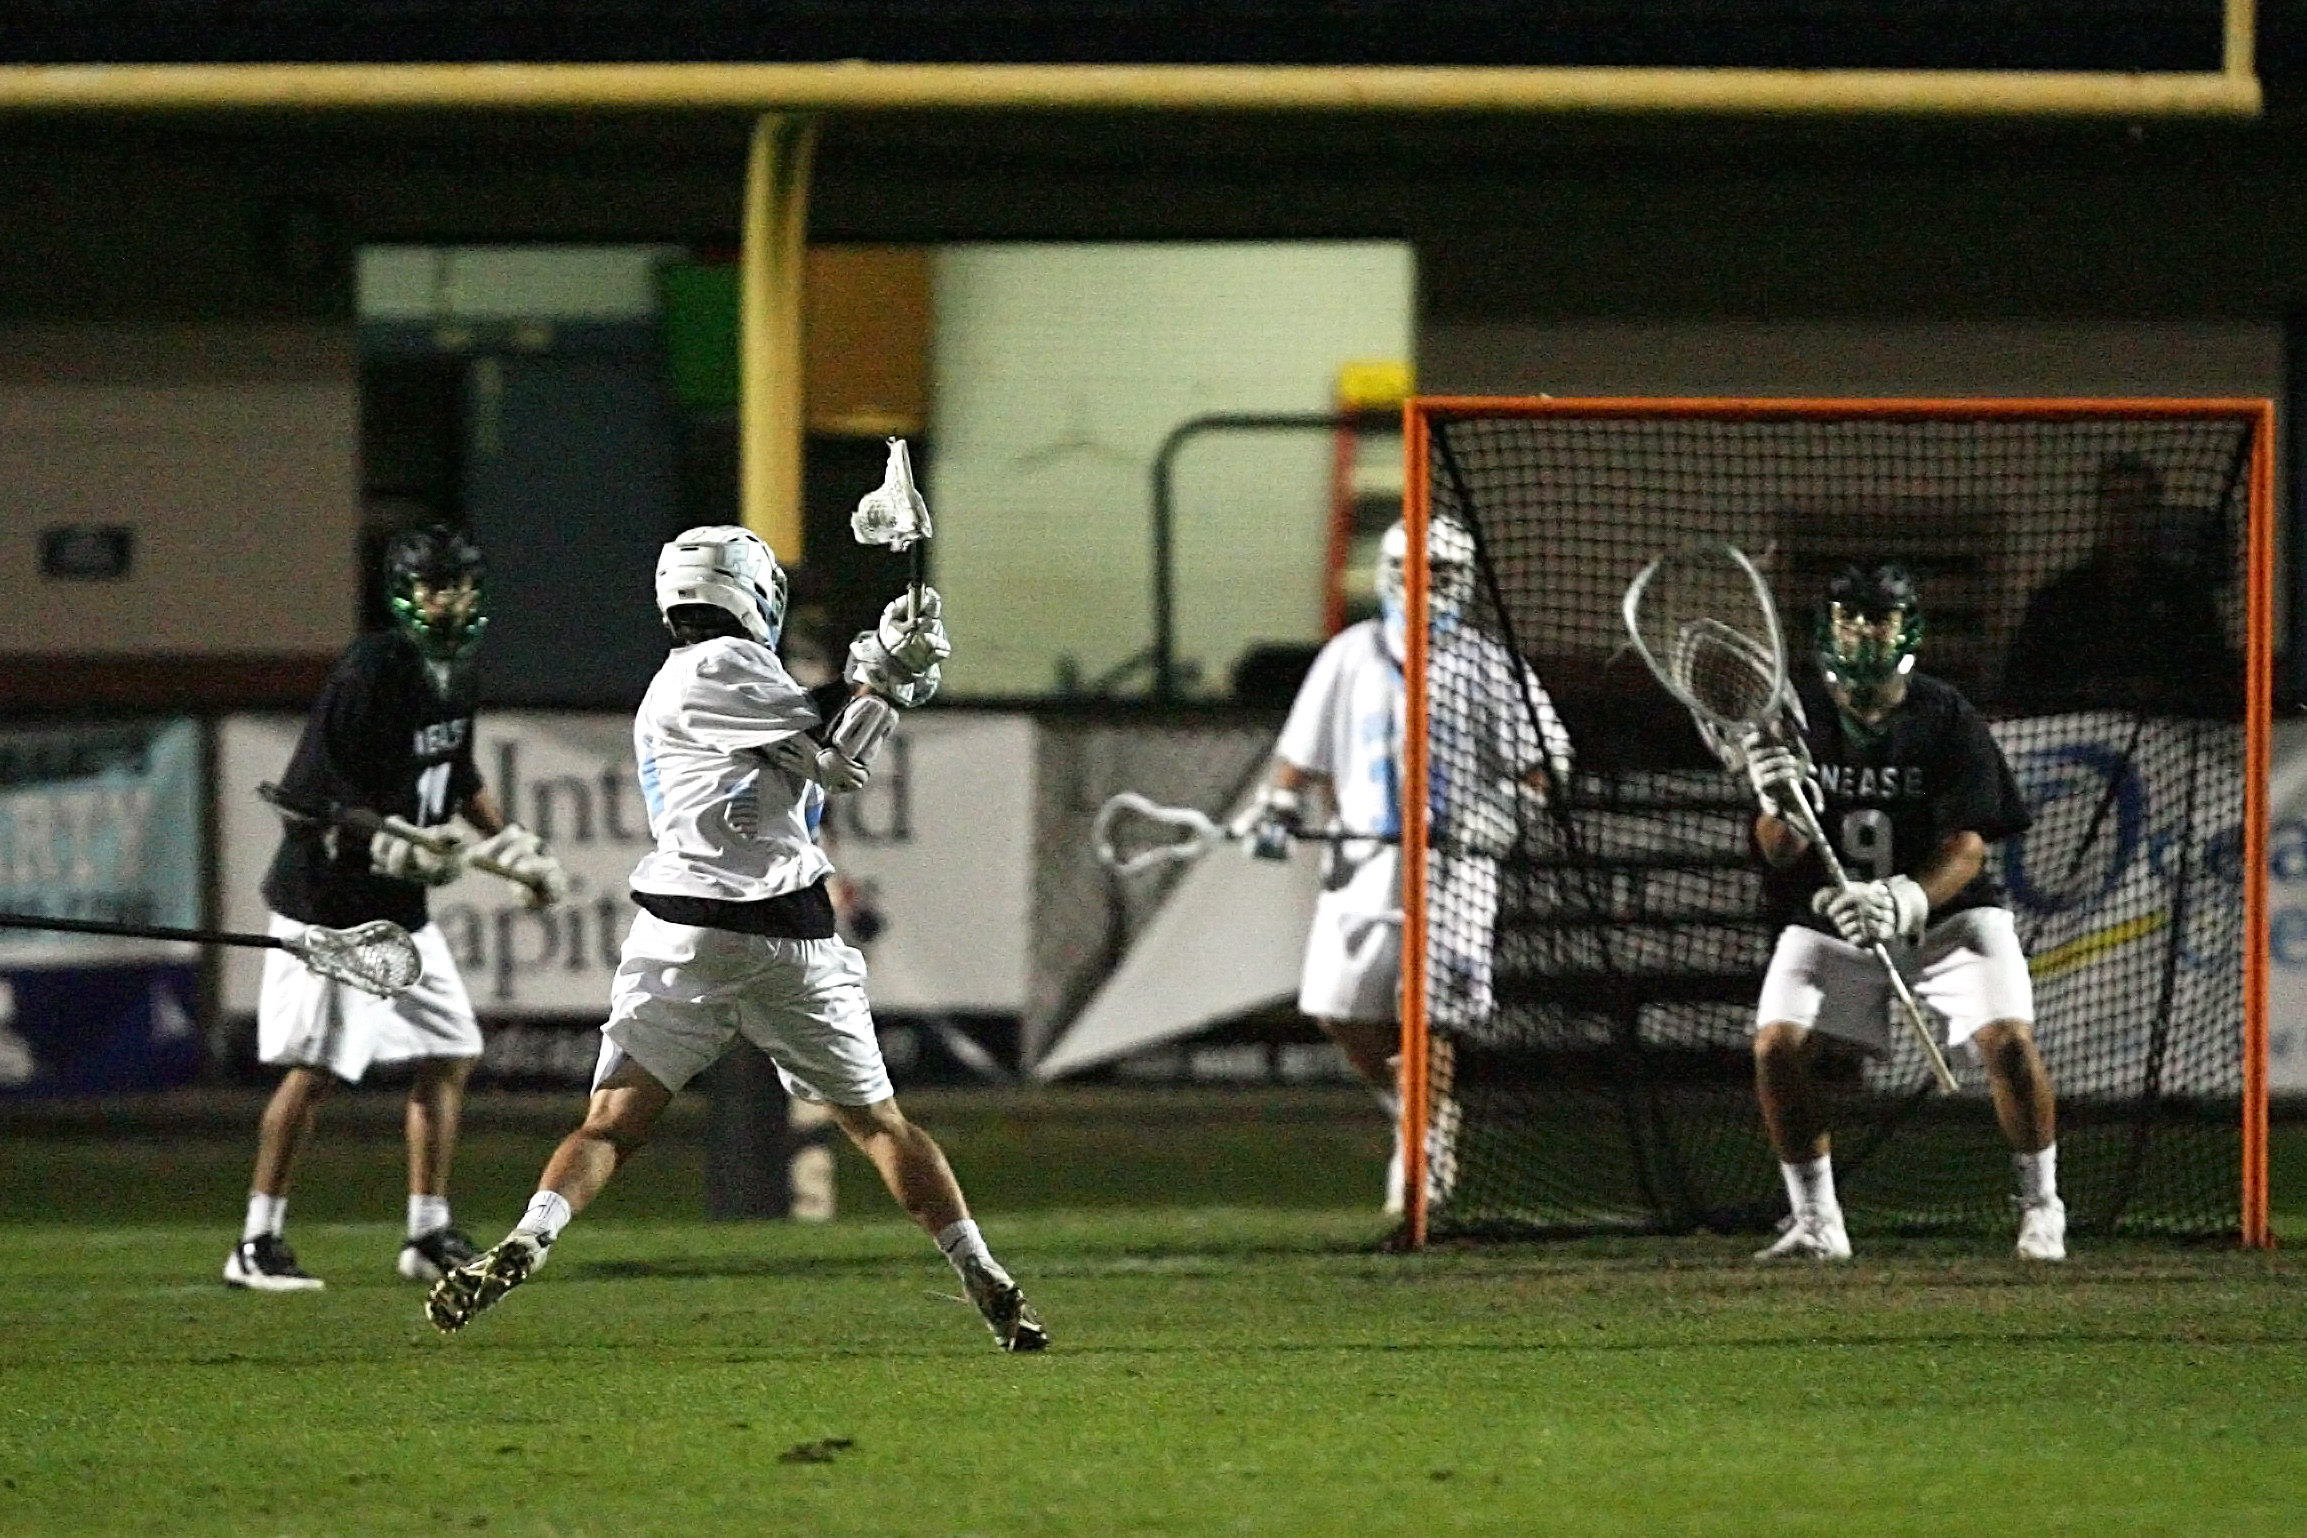 Ponte Vedra's Matt Keeler shoots and scores for the Sharks.